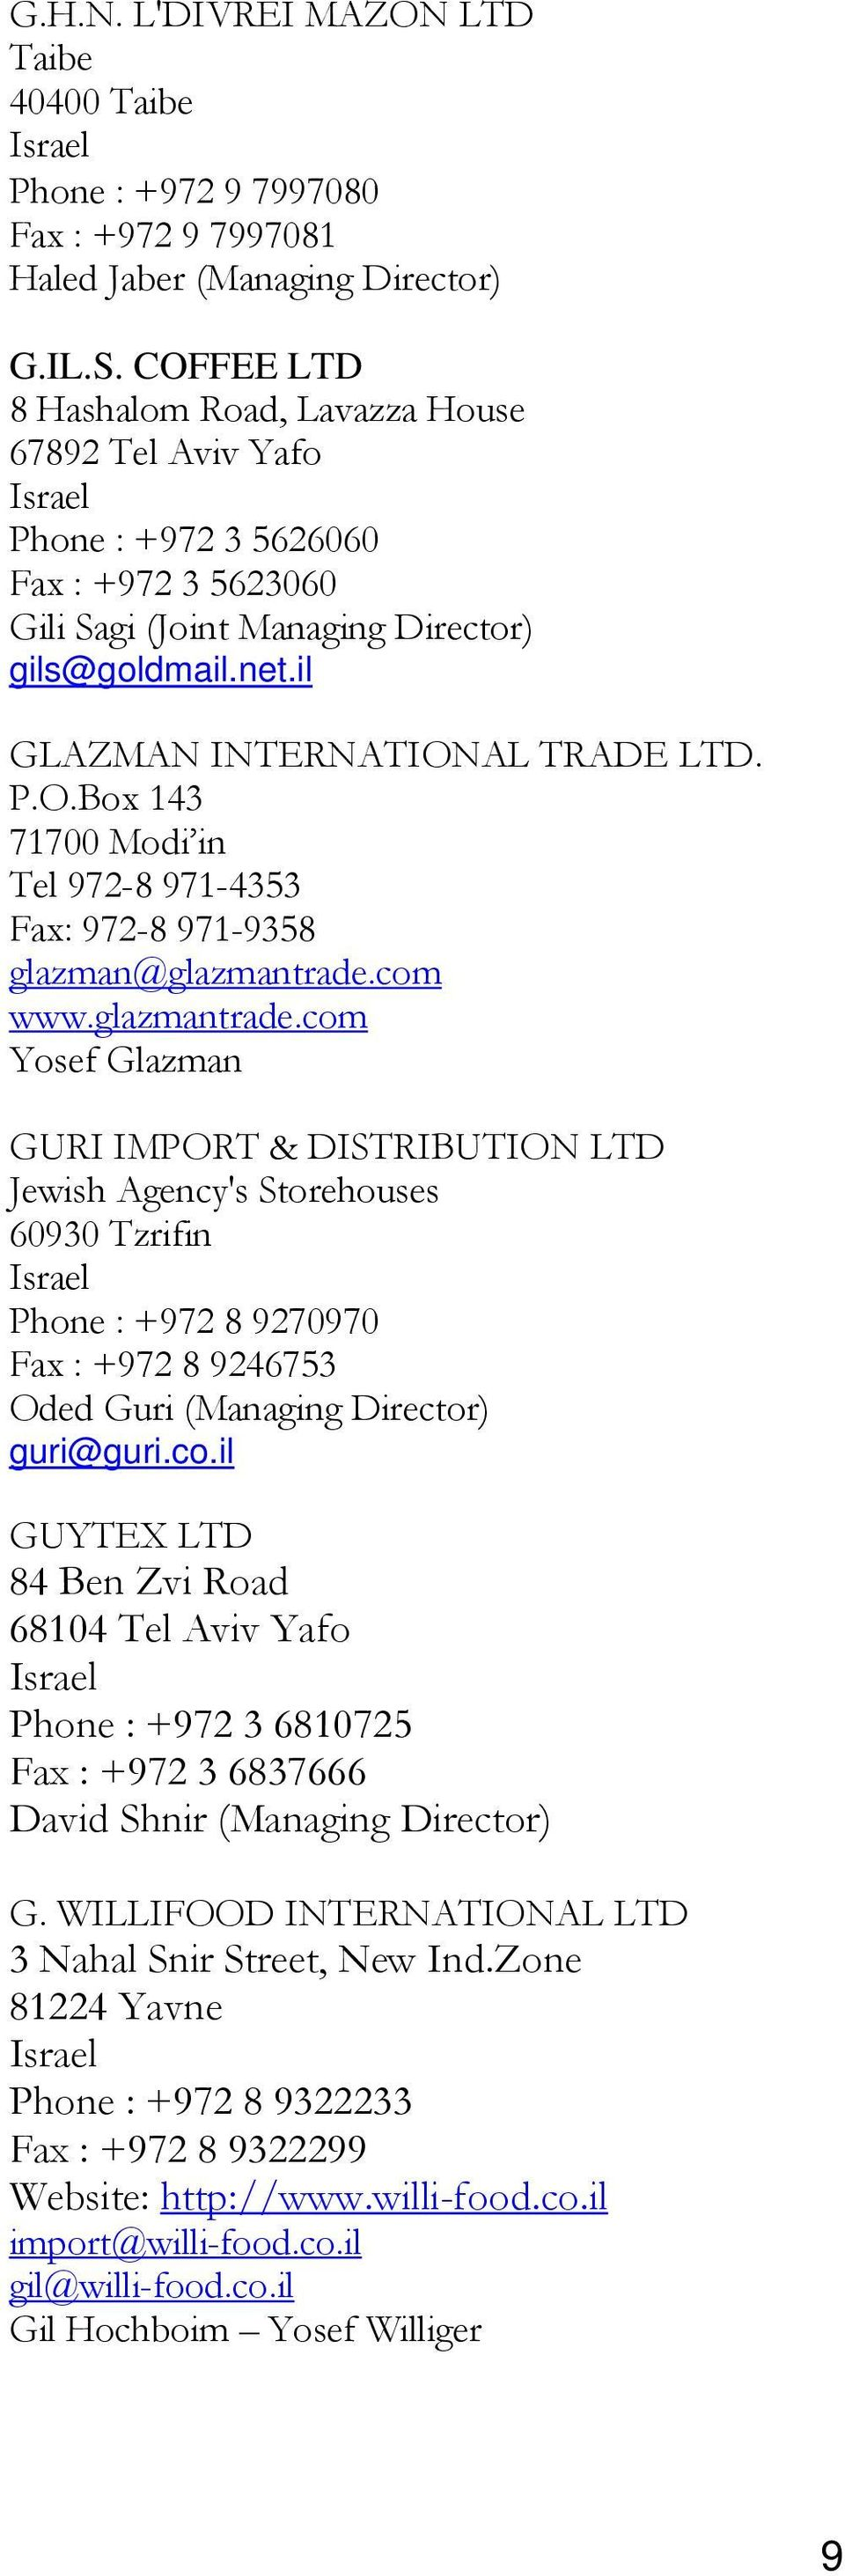 com www.glazmantrade.com Yosef Glazman GURI IMPORT & DISTRIBUTION LTD Jewish Agency's Storehouses 60930 Tzrifin Phone : +972 8 9270970 Fax : +972 8 9246753 Oded Guri (Managing Director) guri@guri.co.il GUYTEX LTD 84 Ben Zvi Road 68104 Tel Aviv Yafo Phone : +972 3 6810725 Fax : +972 3 6837666 David Shnir (Managing Director) G.